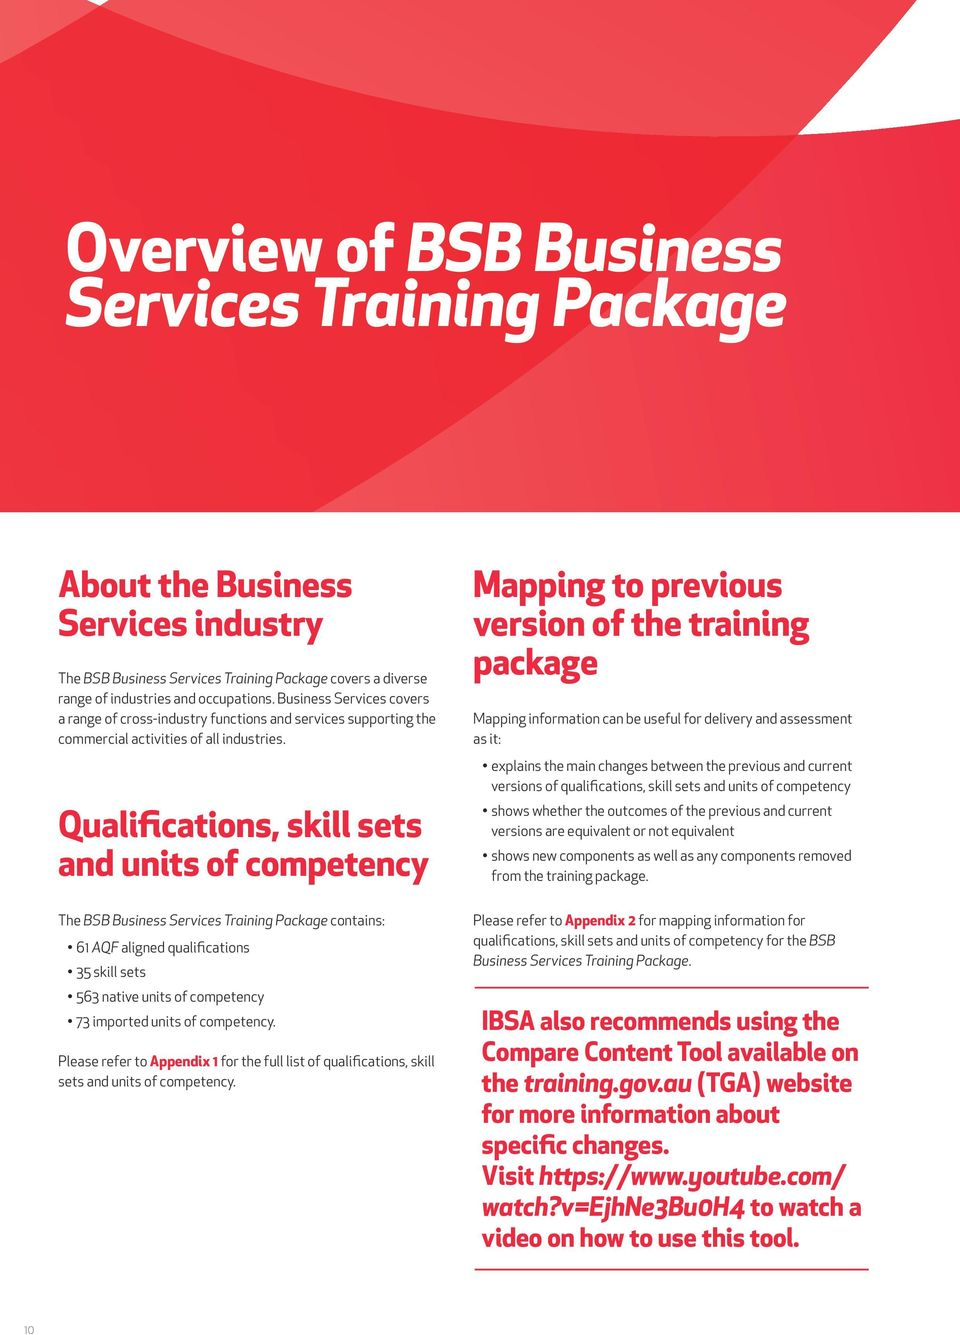 bsb business services training package implementation guide pdf qualifications skill sets and units of competency mapping to previous version of the training package